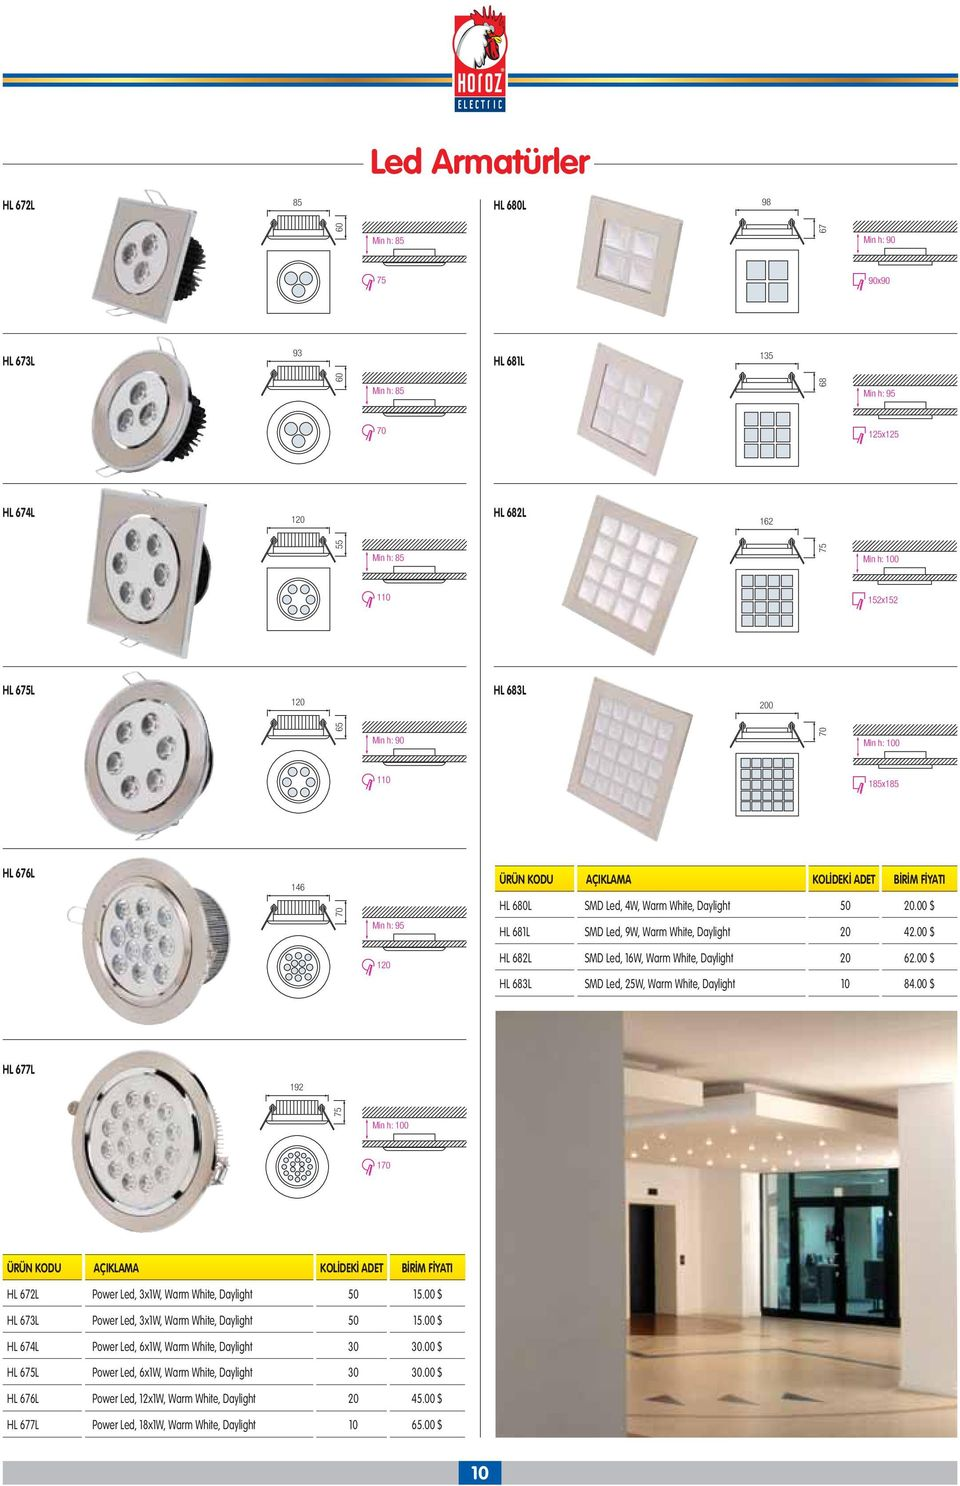 00 $ 120 HL 682L SMD Led, 16W, Warm White, Daylight 20 62.00 $ HL 683L SMD Led, 25W, Warm White, Daylight 10 84.